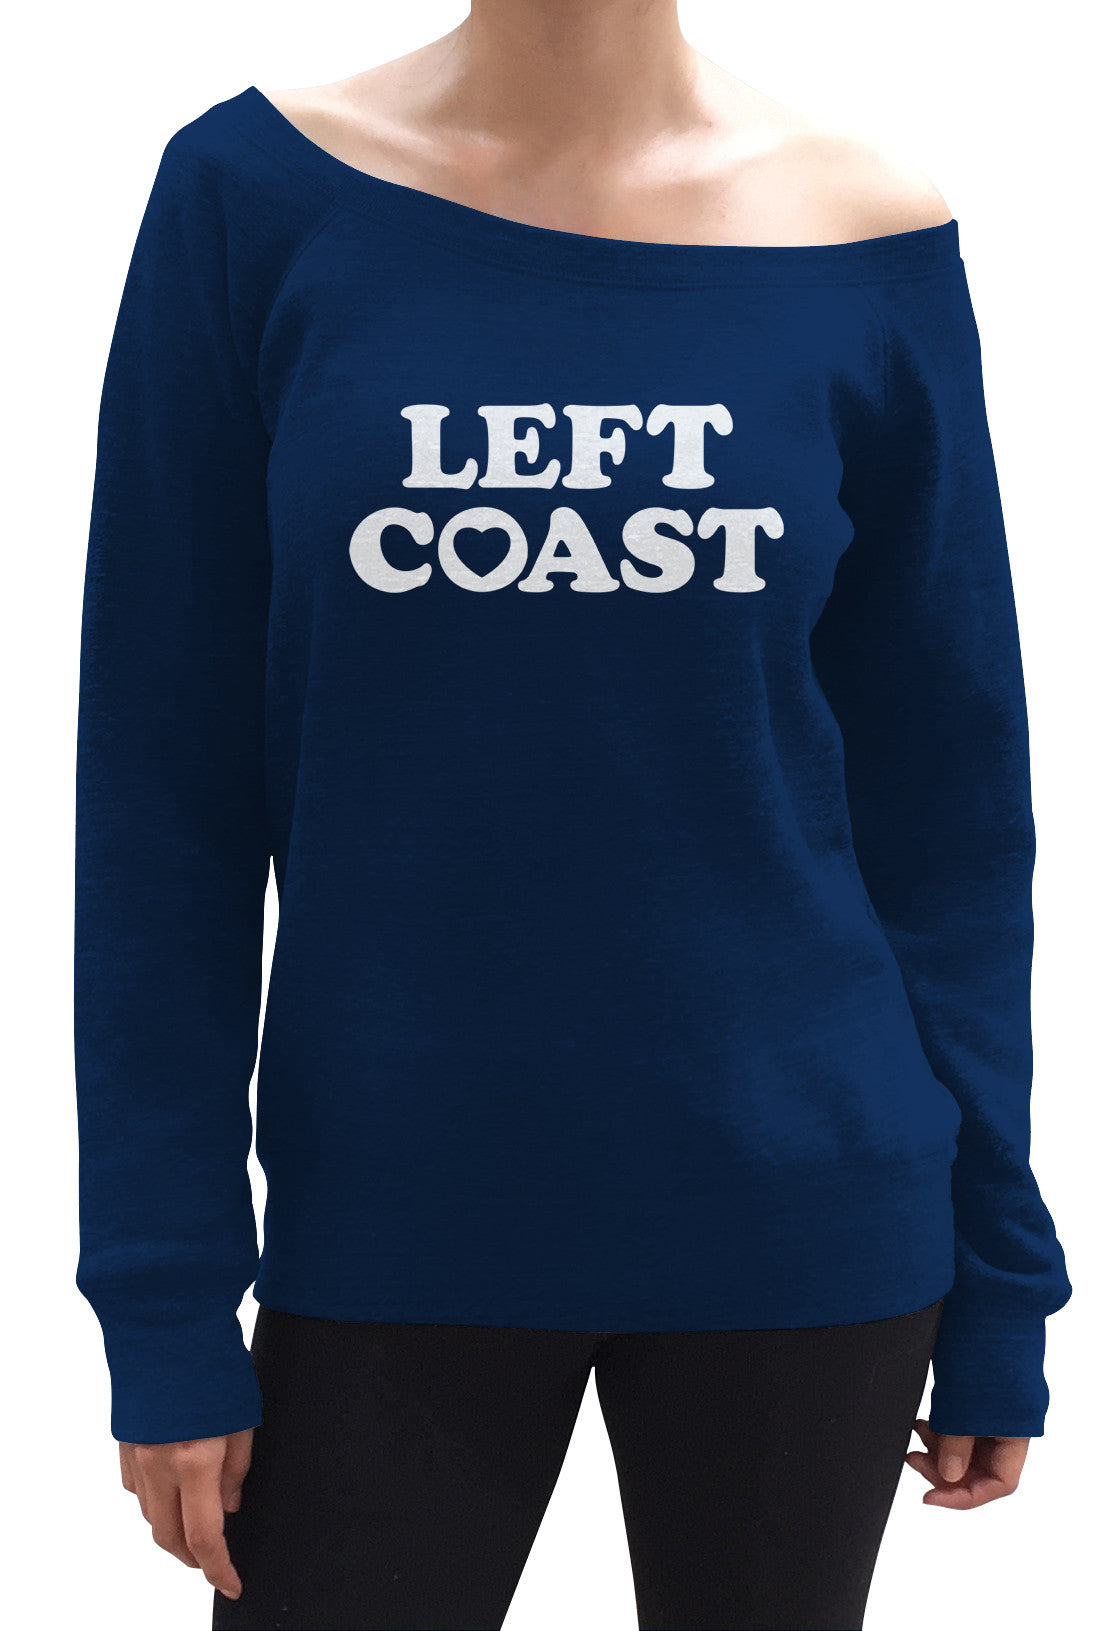 Women's Left Coast Scoop Neck Fleece - California Oregon Washingon West Coast